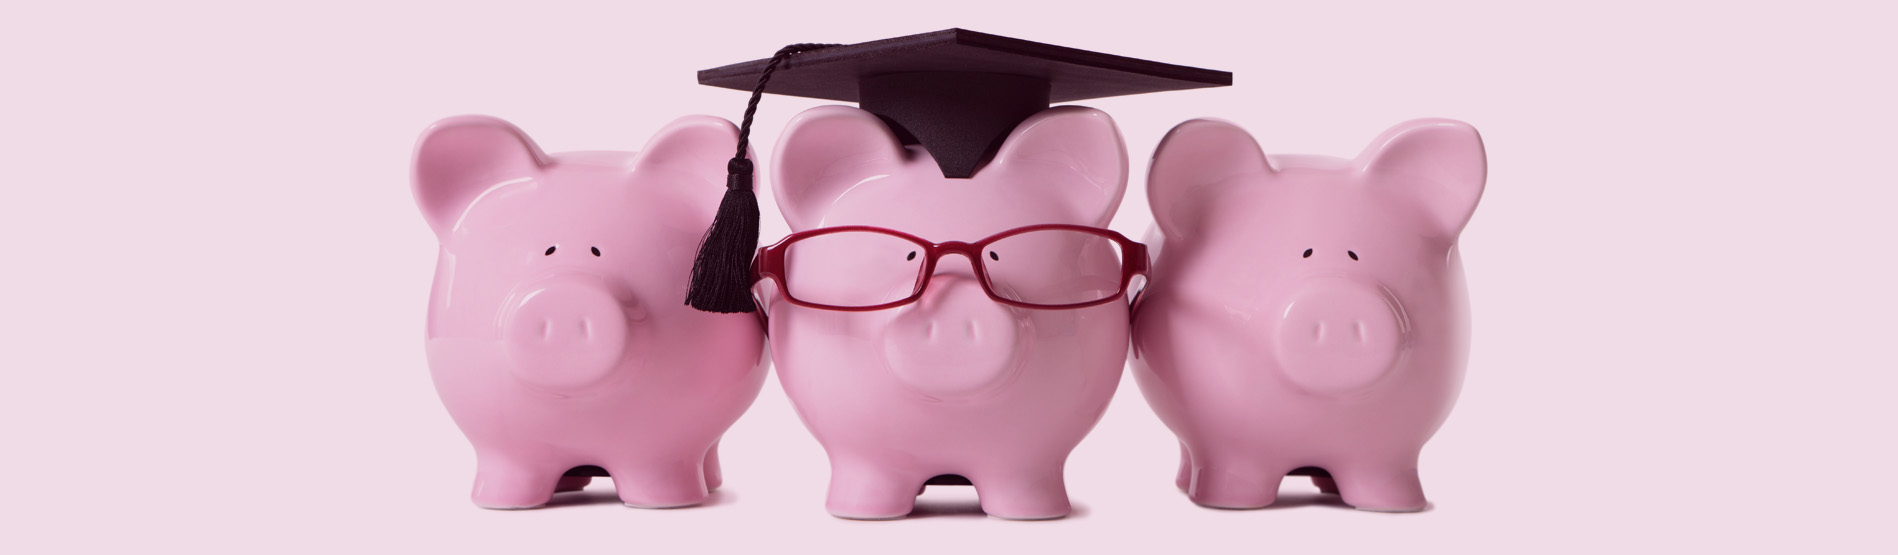 Row of pink piggy banks, one wearing glasses and academic cap